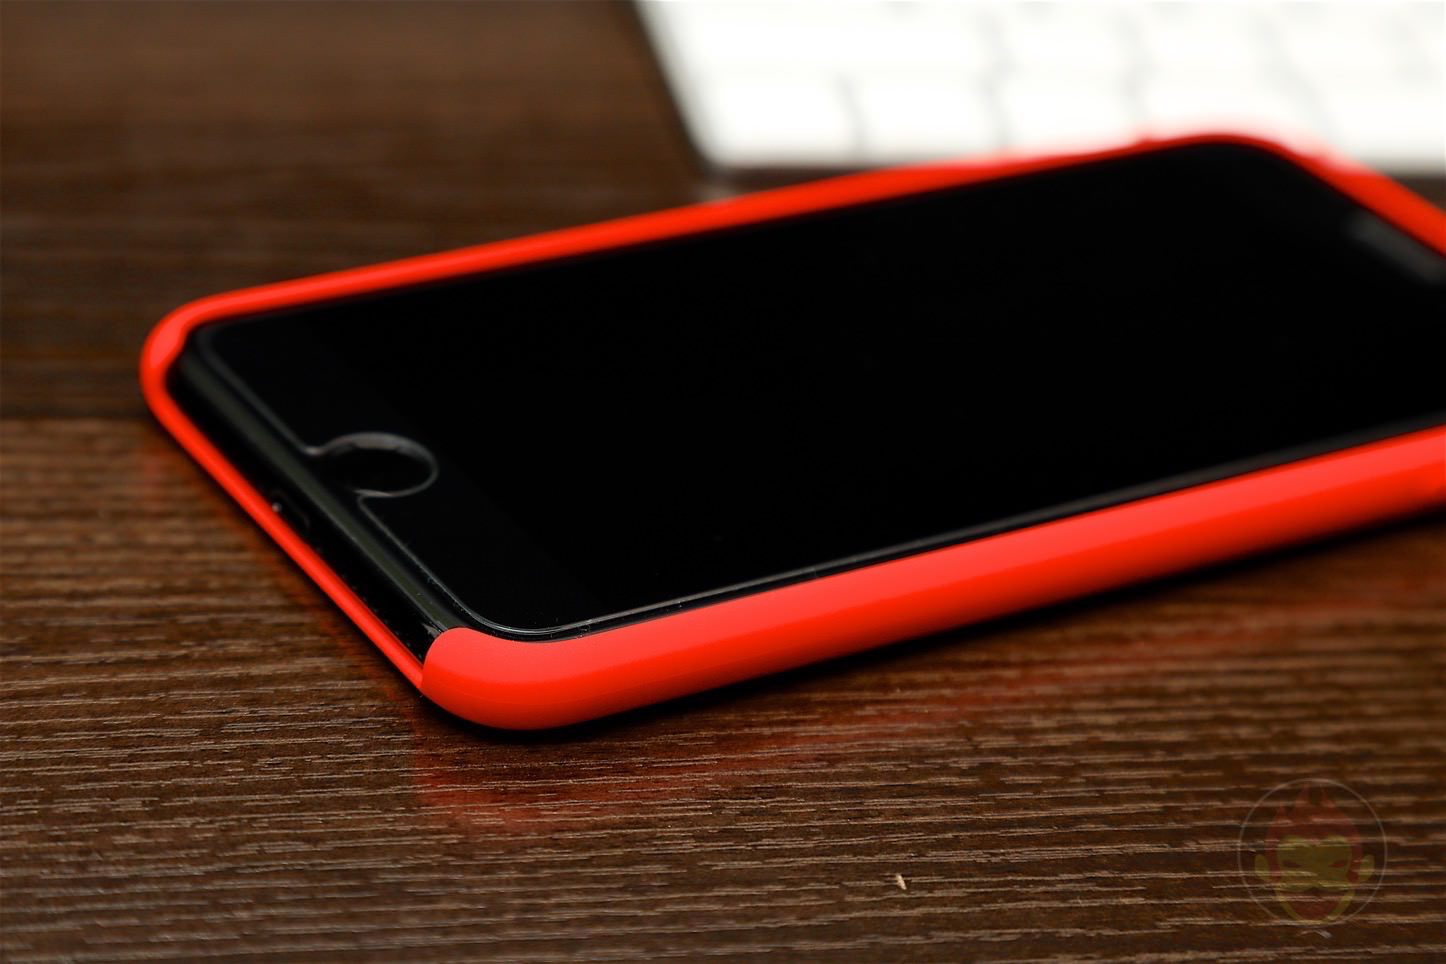 iPhone-7-Plus-Silicone-Case-Product-Red-07.jpg